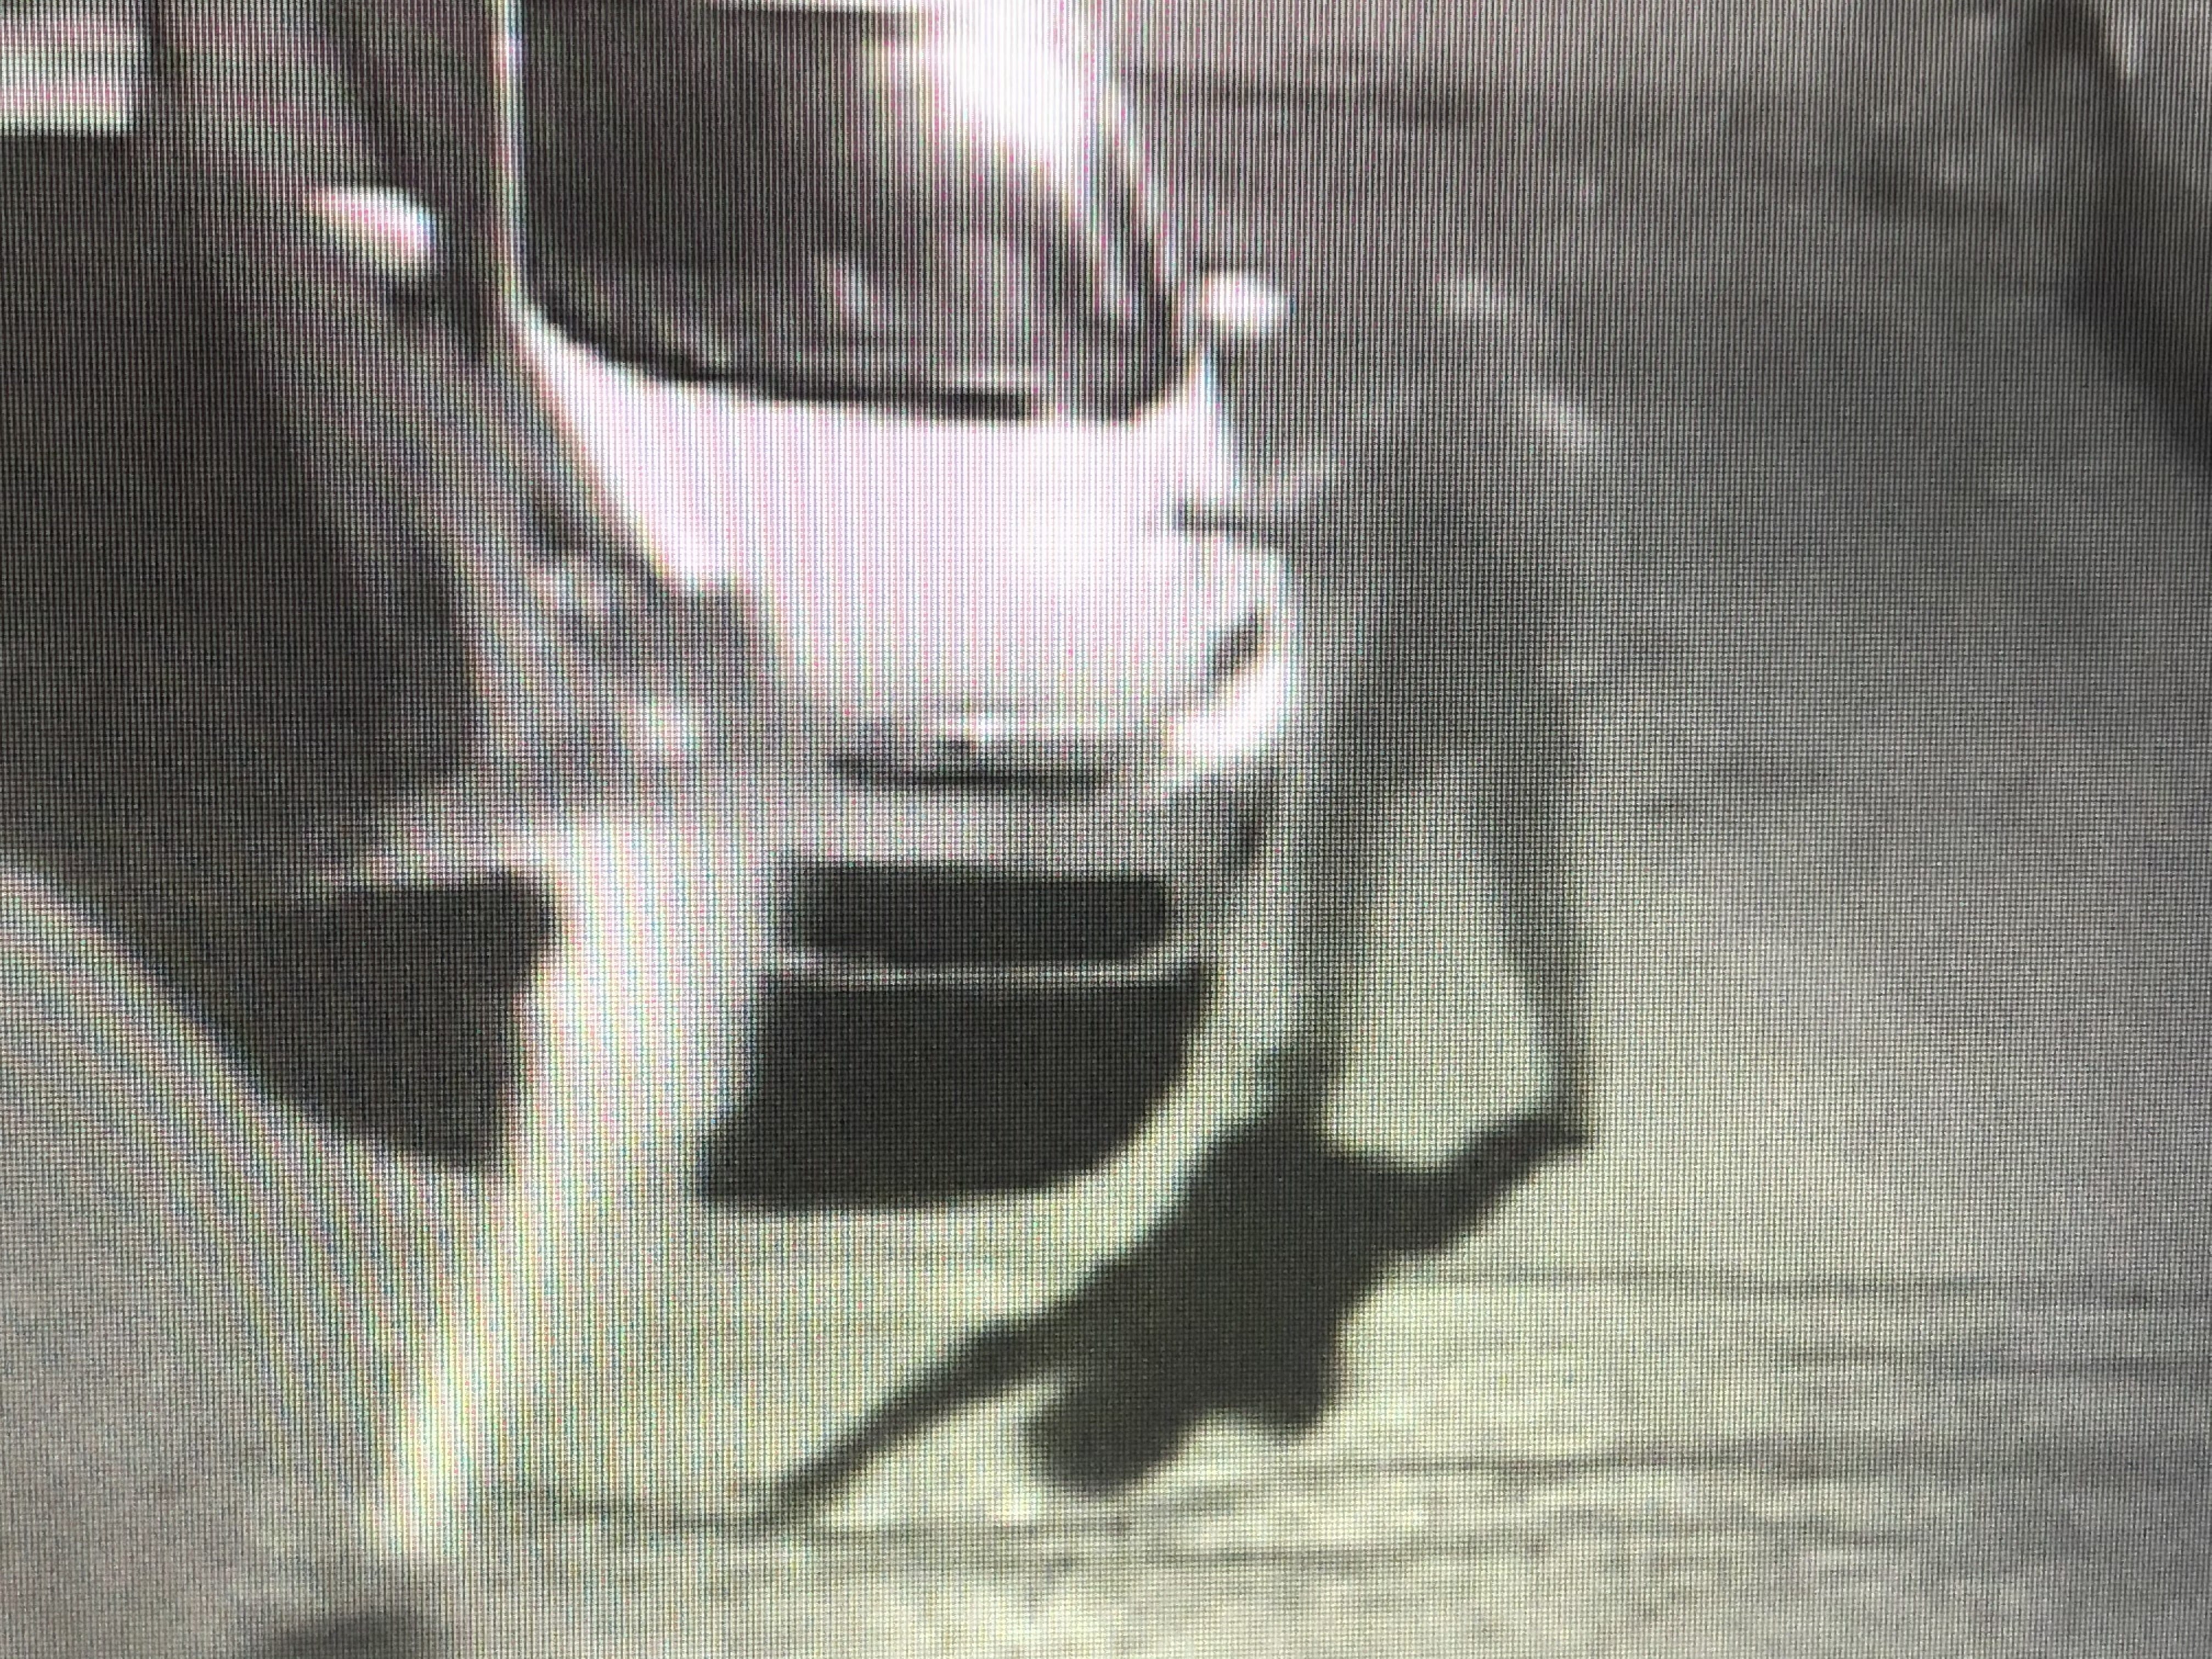 Nearly two months after a man and woman were found shot to death in a Southeast Columbus parking lot, The Franklin County Sheriff's office is releasing video of the deadly shootings to help identify two suspected gunmen. (Courtesy: Franklin County Sheriff)